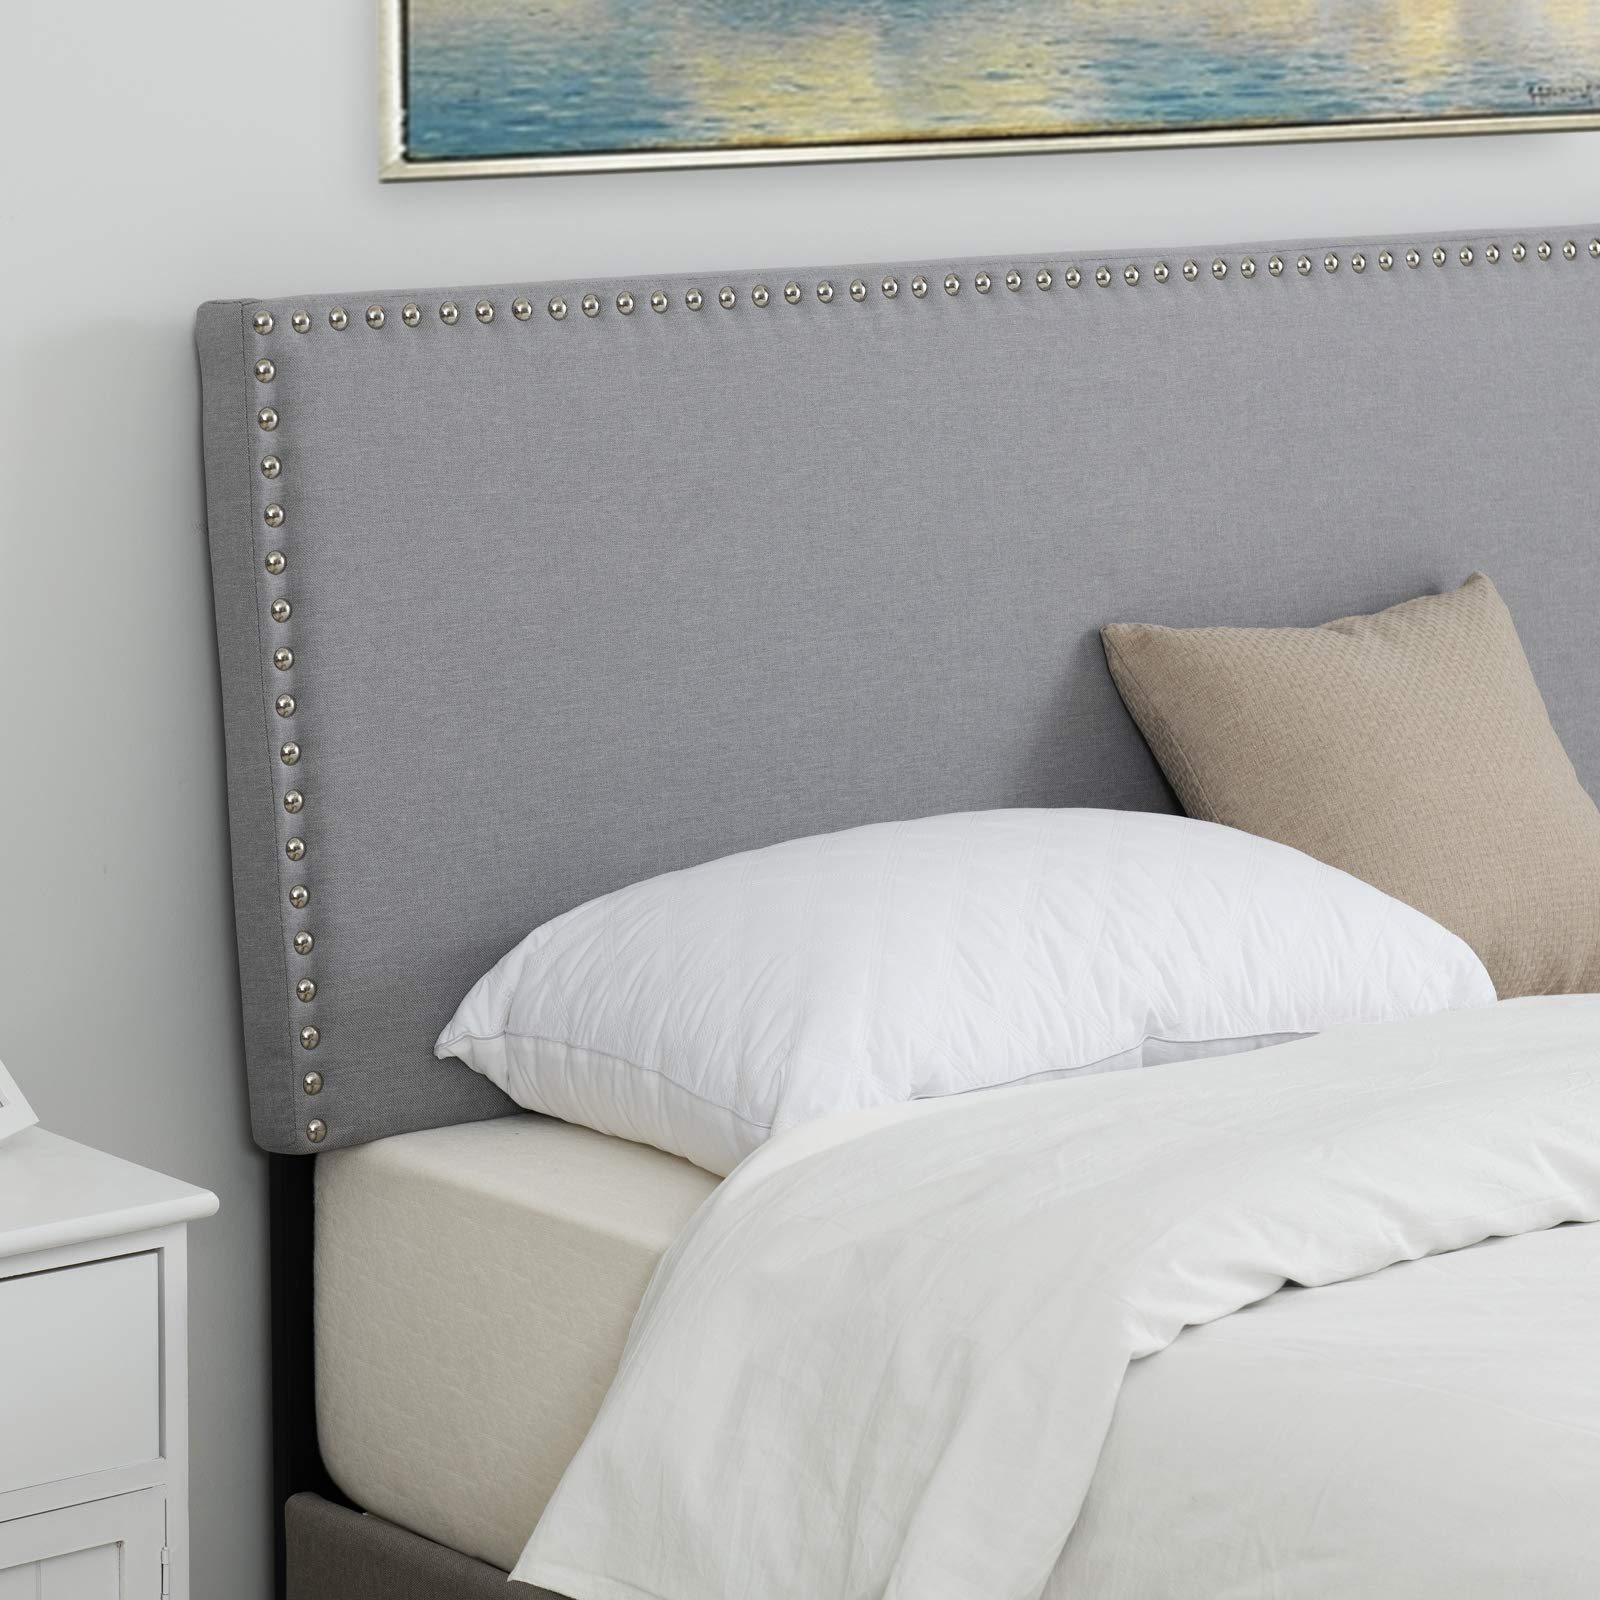 LAGRIMA Upholstered Nailhead Rectangular Headboard in Light Grey Fabric|Full/Queen|Height Adjustable by LAGRIMA